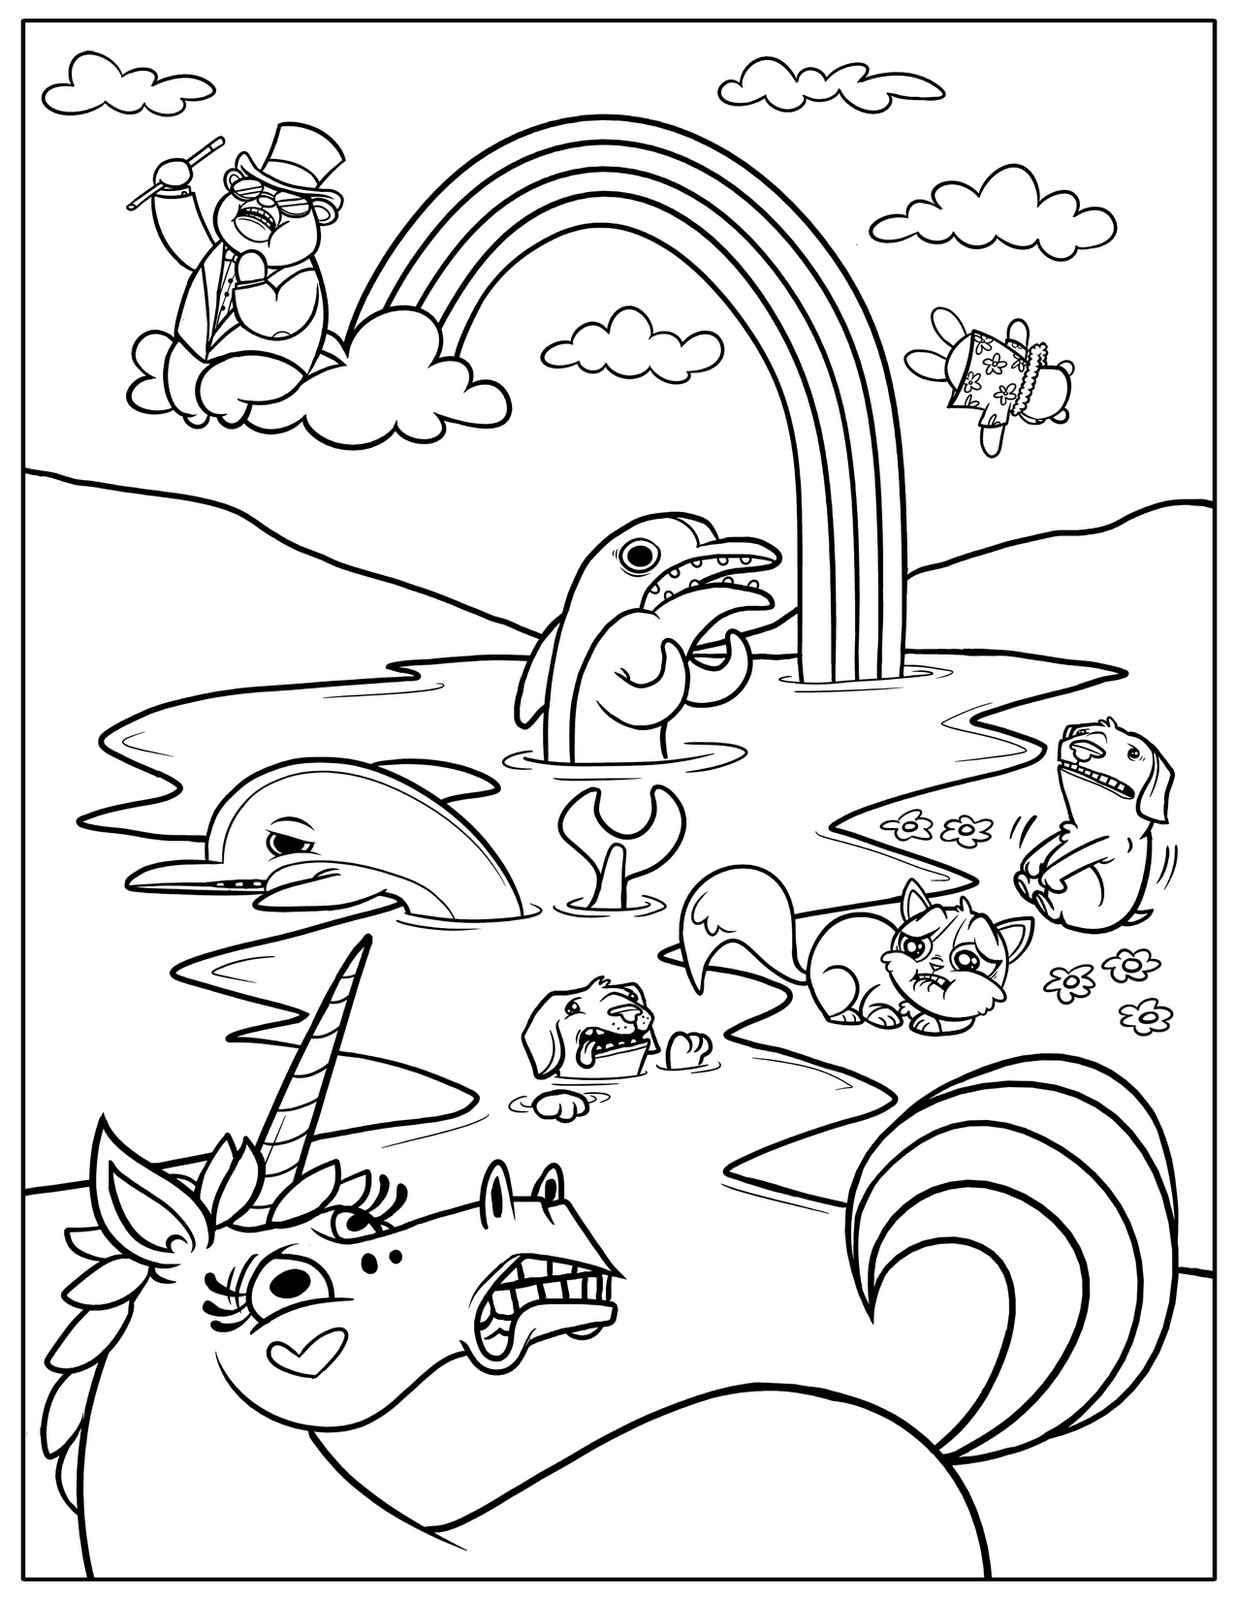 Best ideas about Free Coloring Pages To Print For Kids . Save or Pin Free Printable Rainbow Coloring Pages For Kids Now.